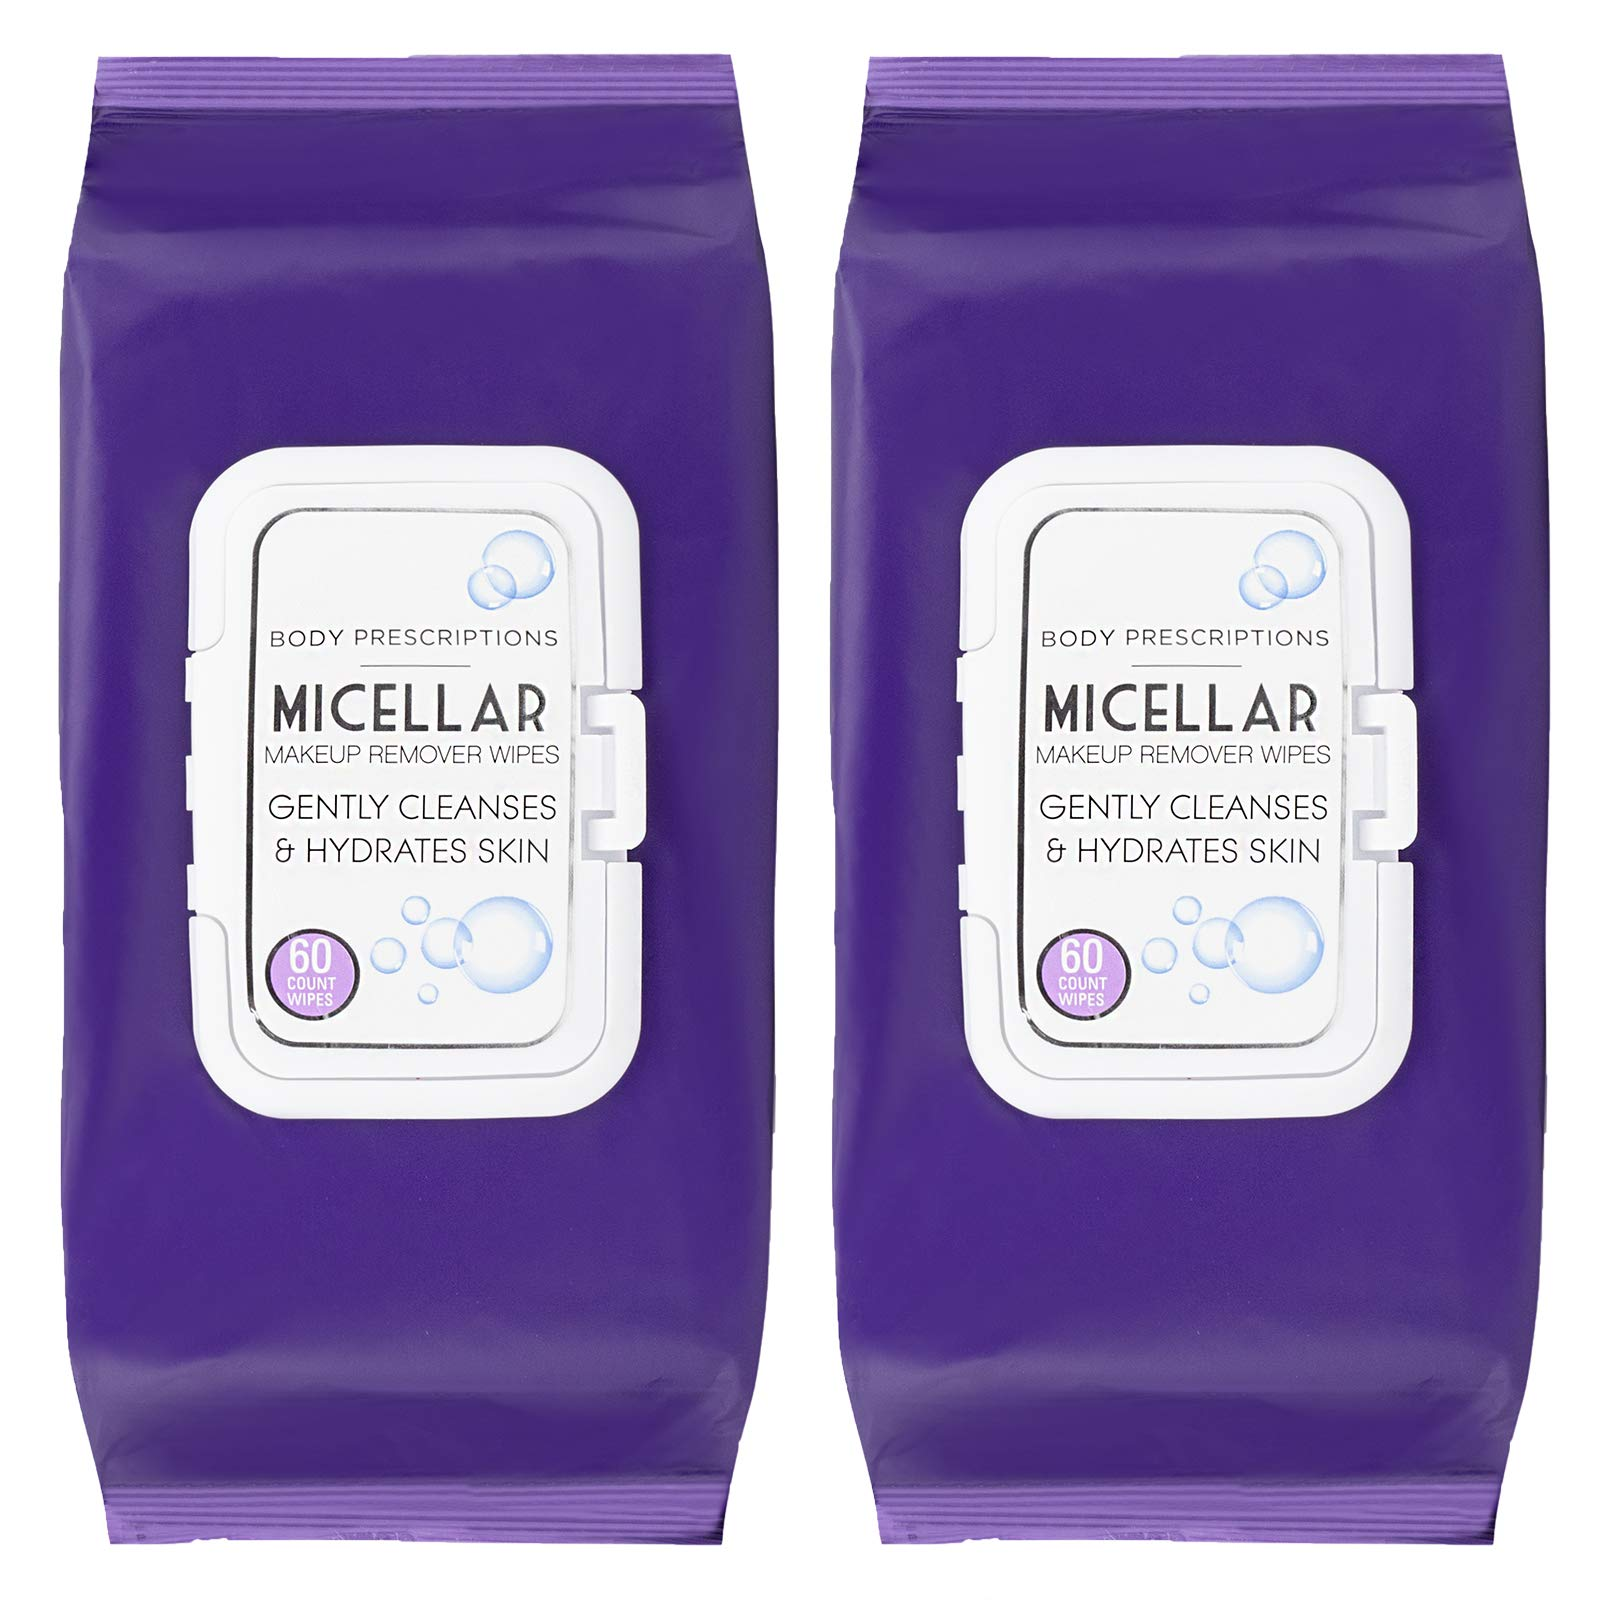 Body Prescriptions - 2 Pack (60 Count Each) Skin Cleansing Micellar Makeup Remover Wipes